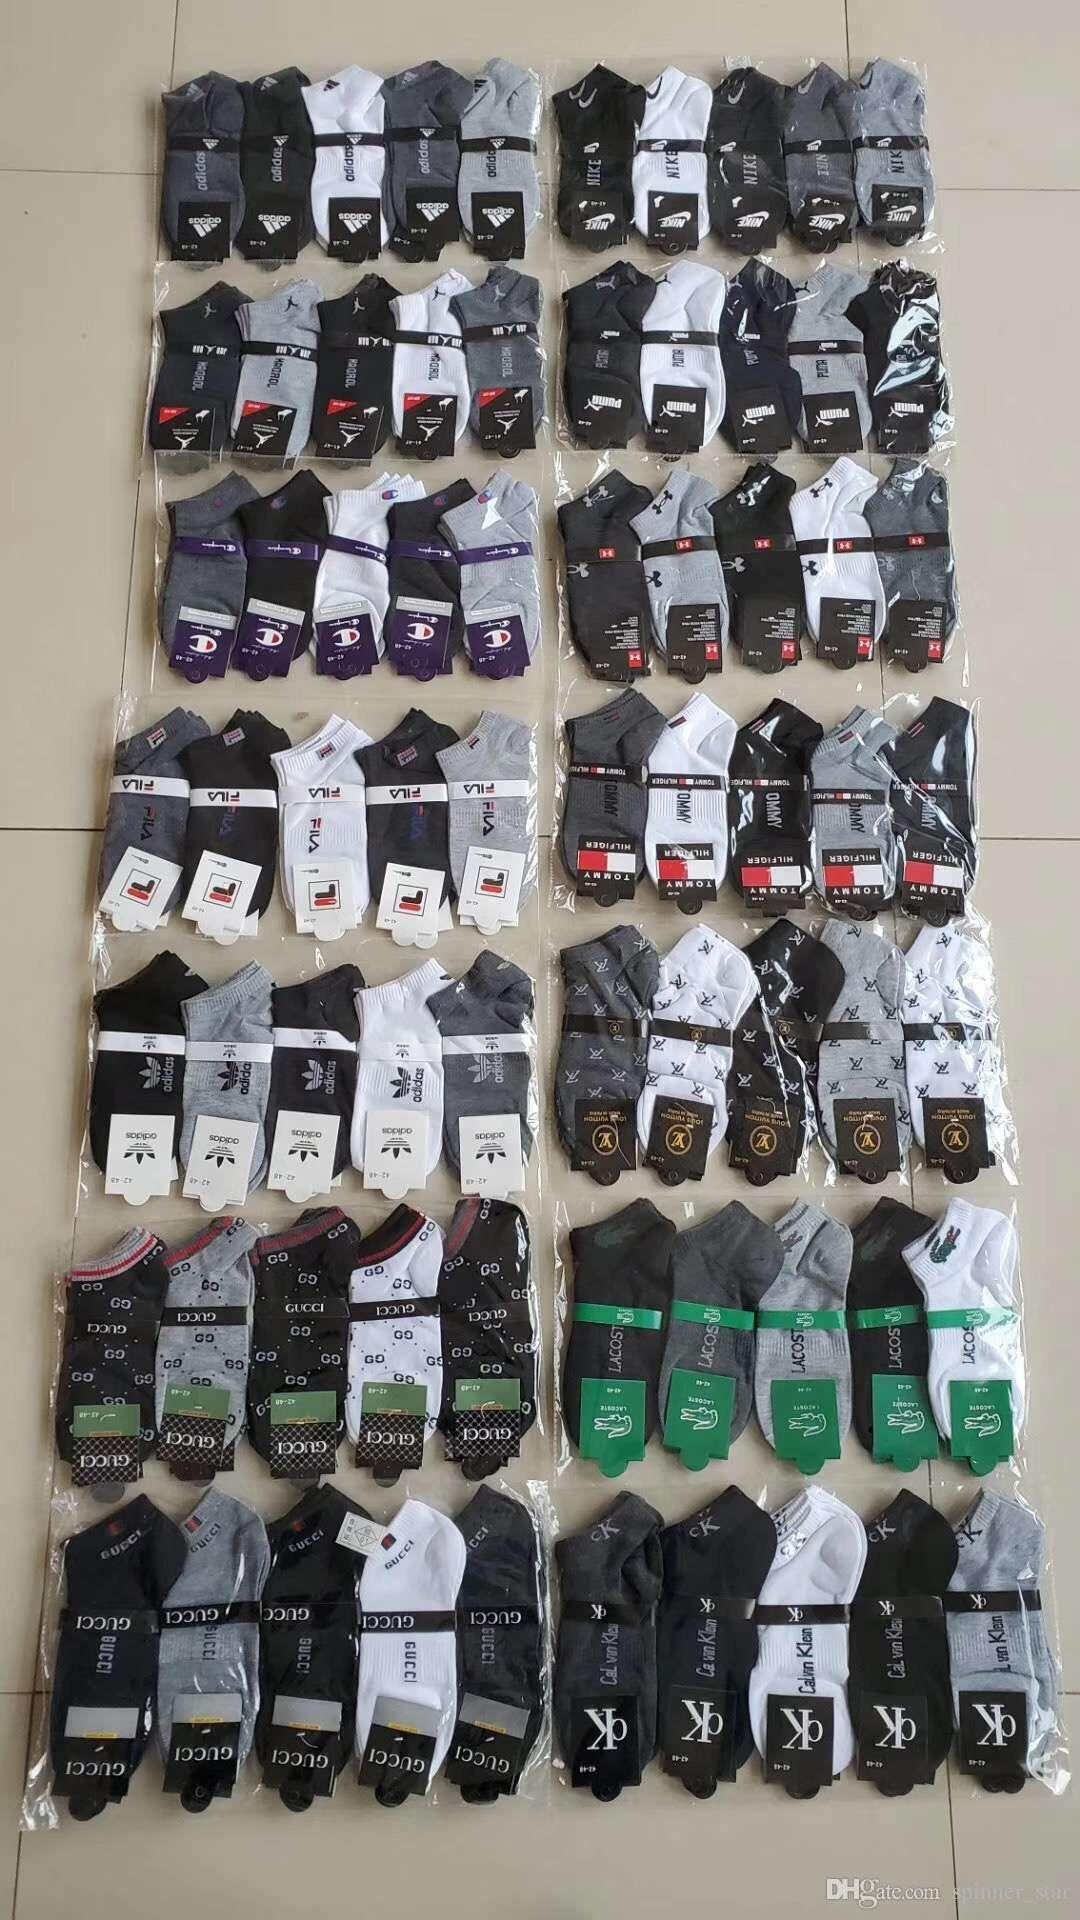 Fashion Women Men Ankle Socks Fils Sock Slippers Sports Cotton Anklet Hosiery Short Socks Sneaker Stockings With Tag Hot